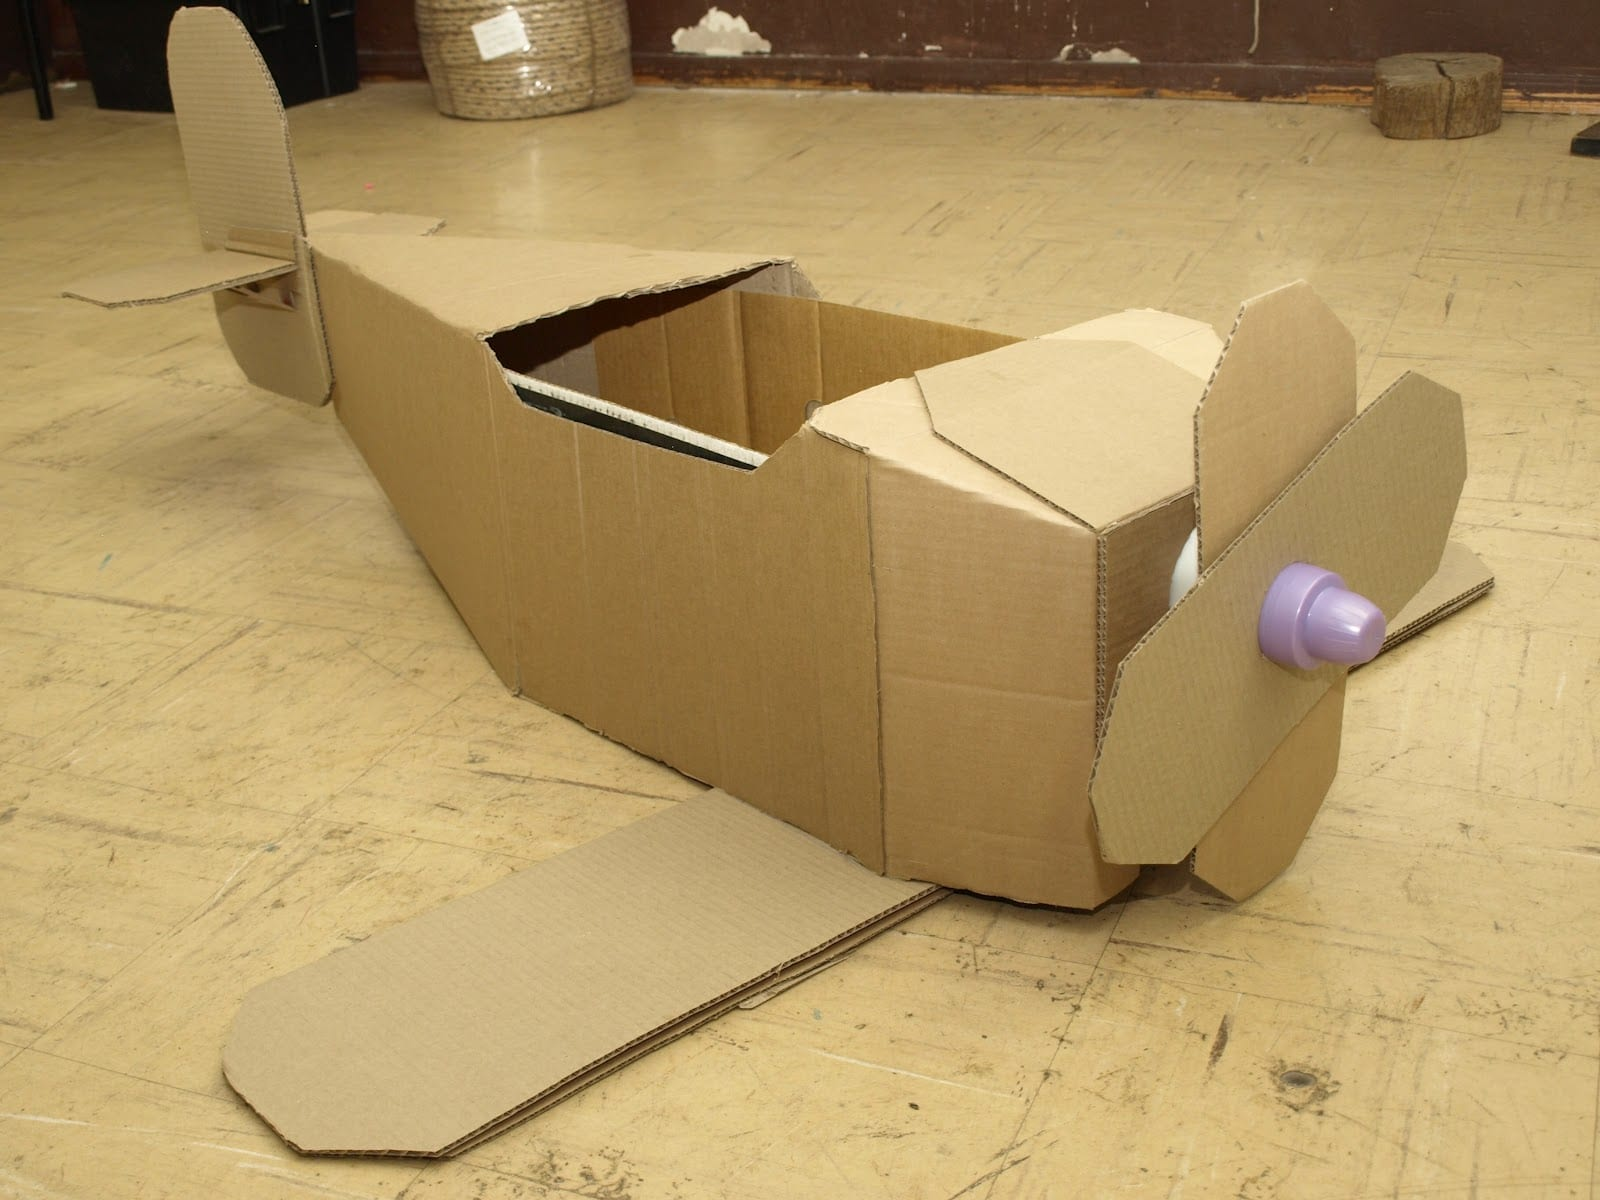 cardboard helicopter with Red Baron Challenge on Police Helicopter Searchlight Searches Suspect 3 likewise Disney Planes Dusty Crophopper Costume further Baby Wearing Costumes as well Paper Plate Boat Scene together with Birthday Gift Ideas For Five Year Old Boy.